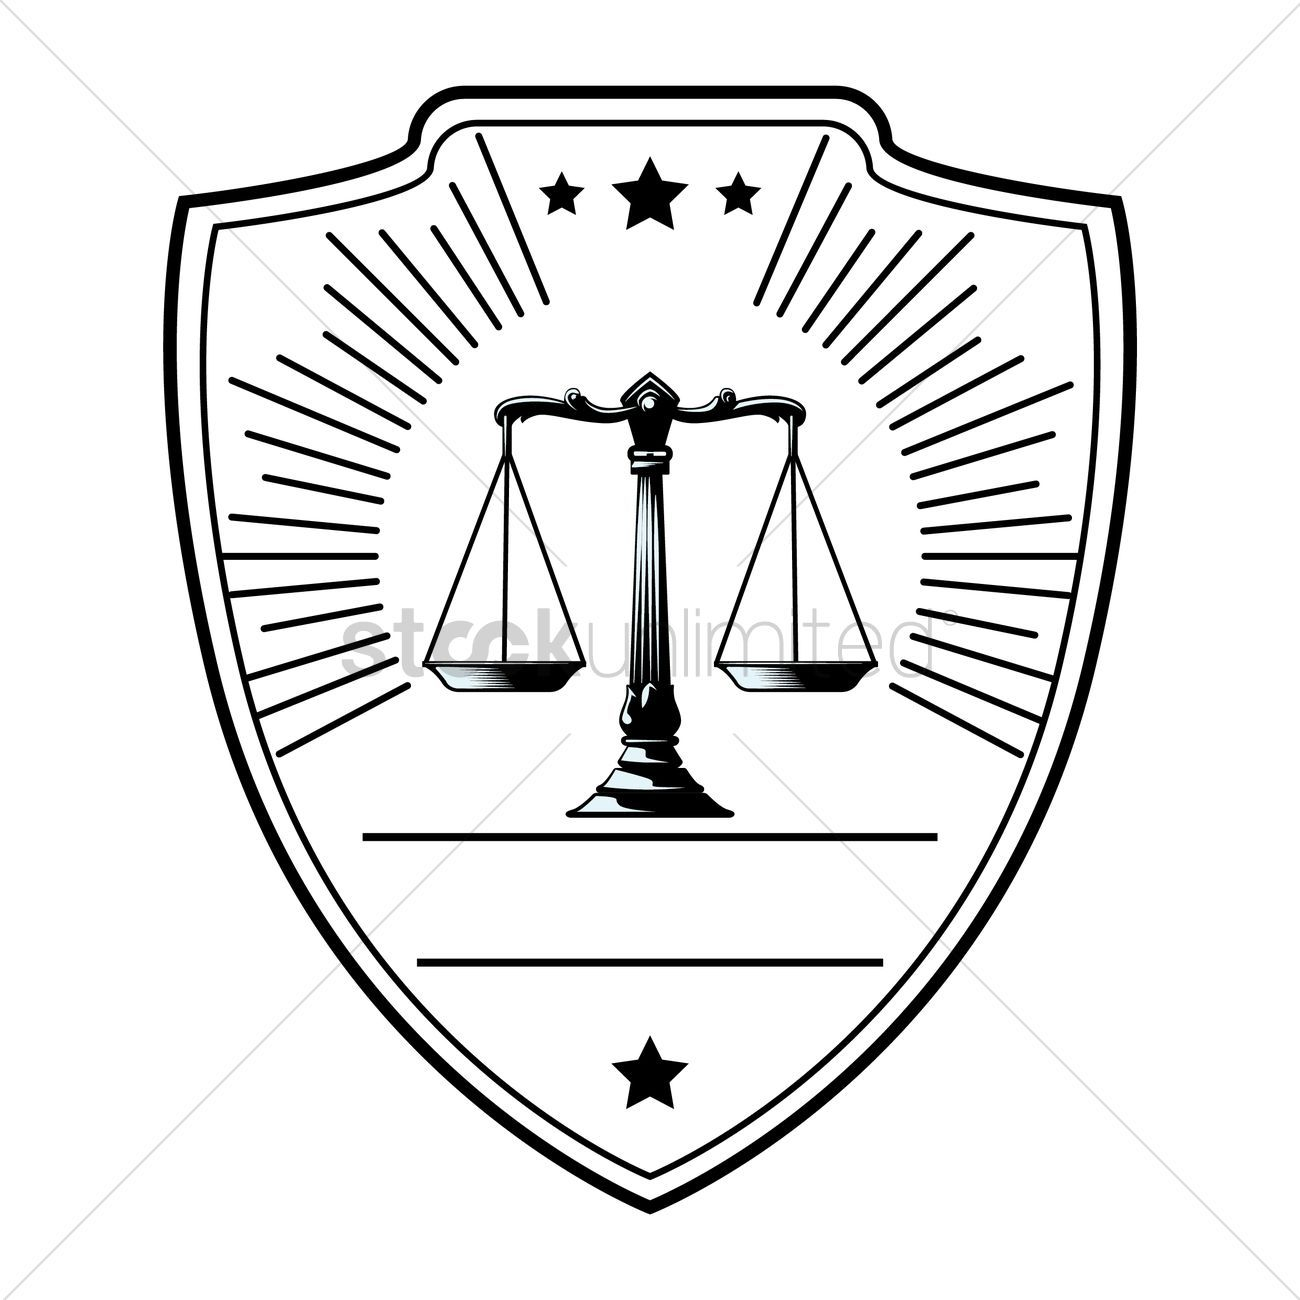 Law logo element vectors stock clipart